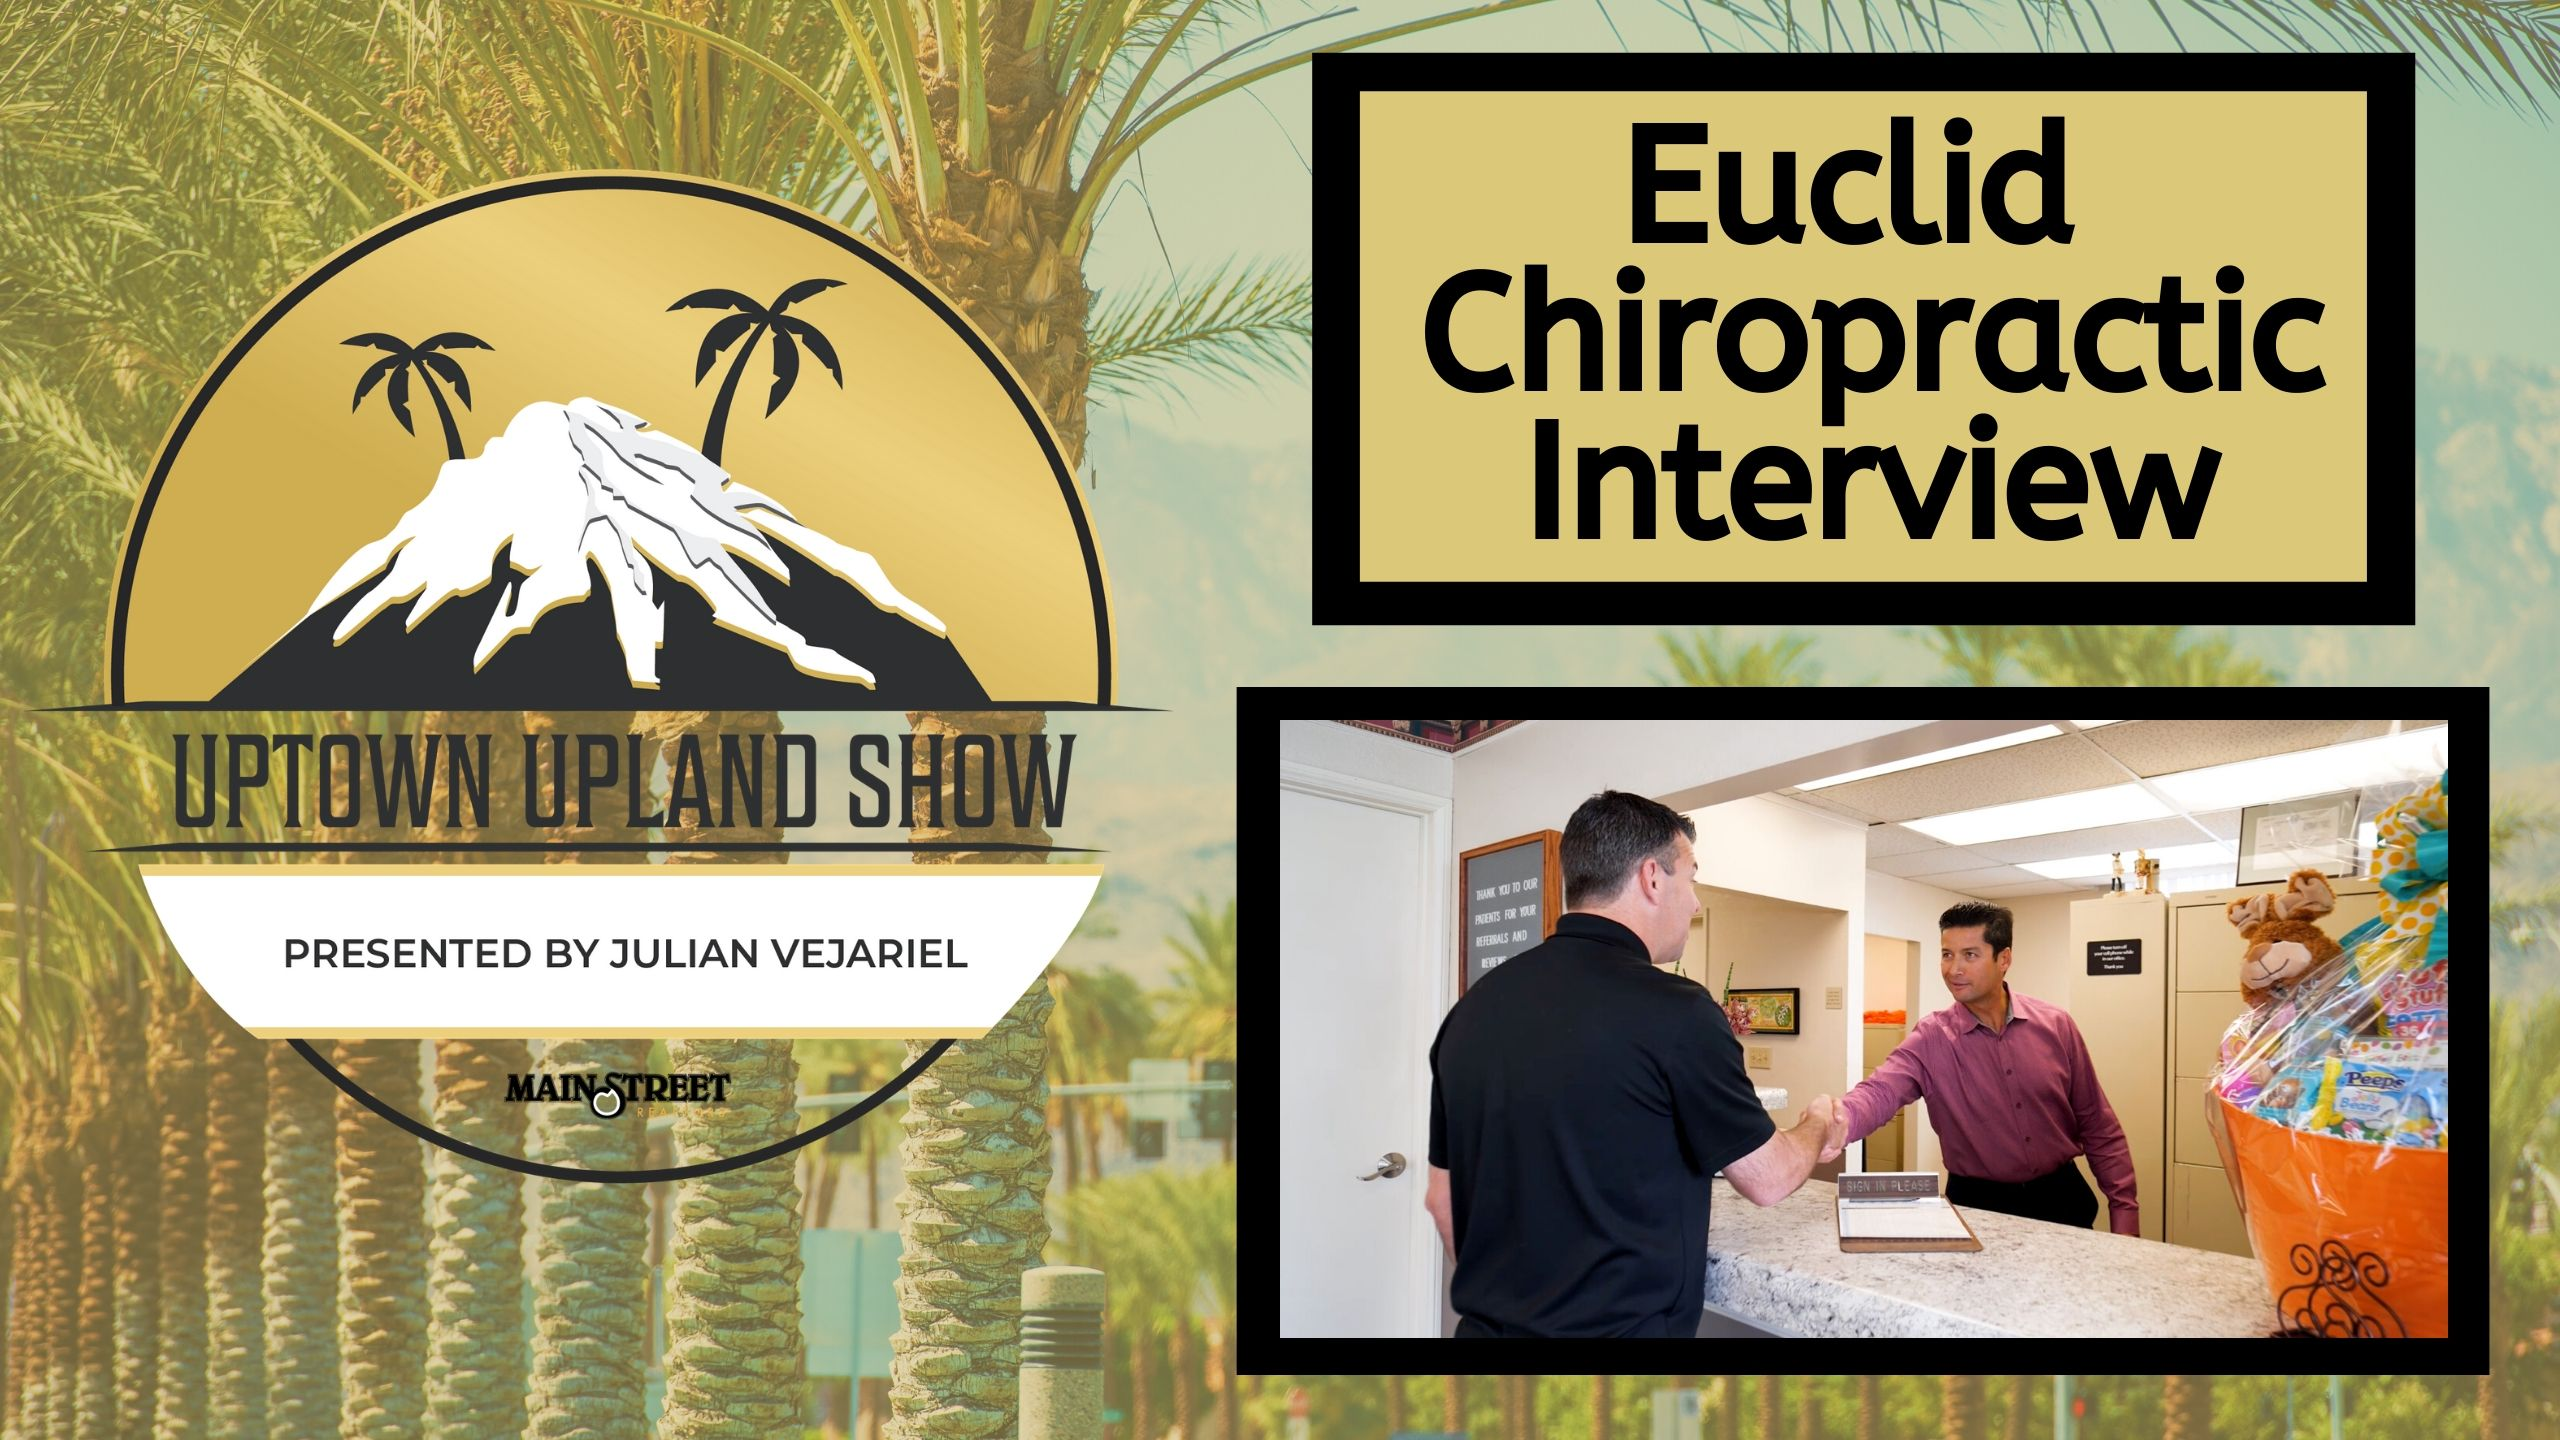 Uptown Upland Show: Euclid Chiropractic Interview